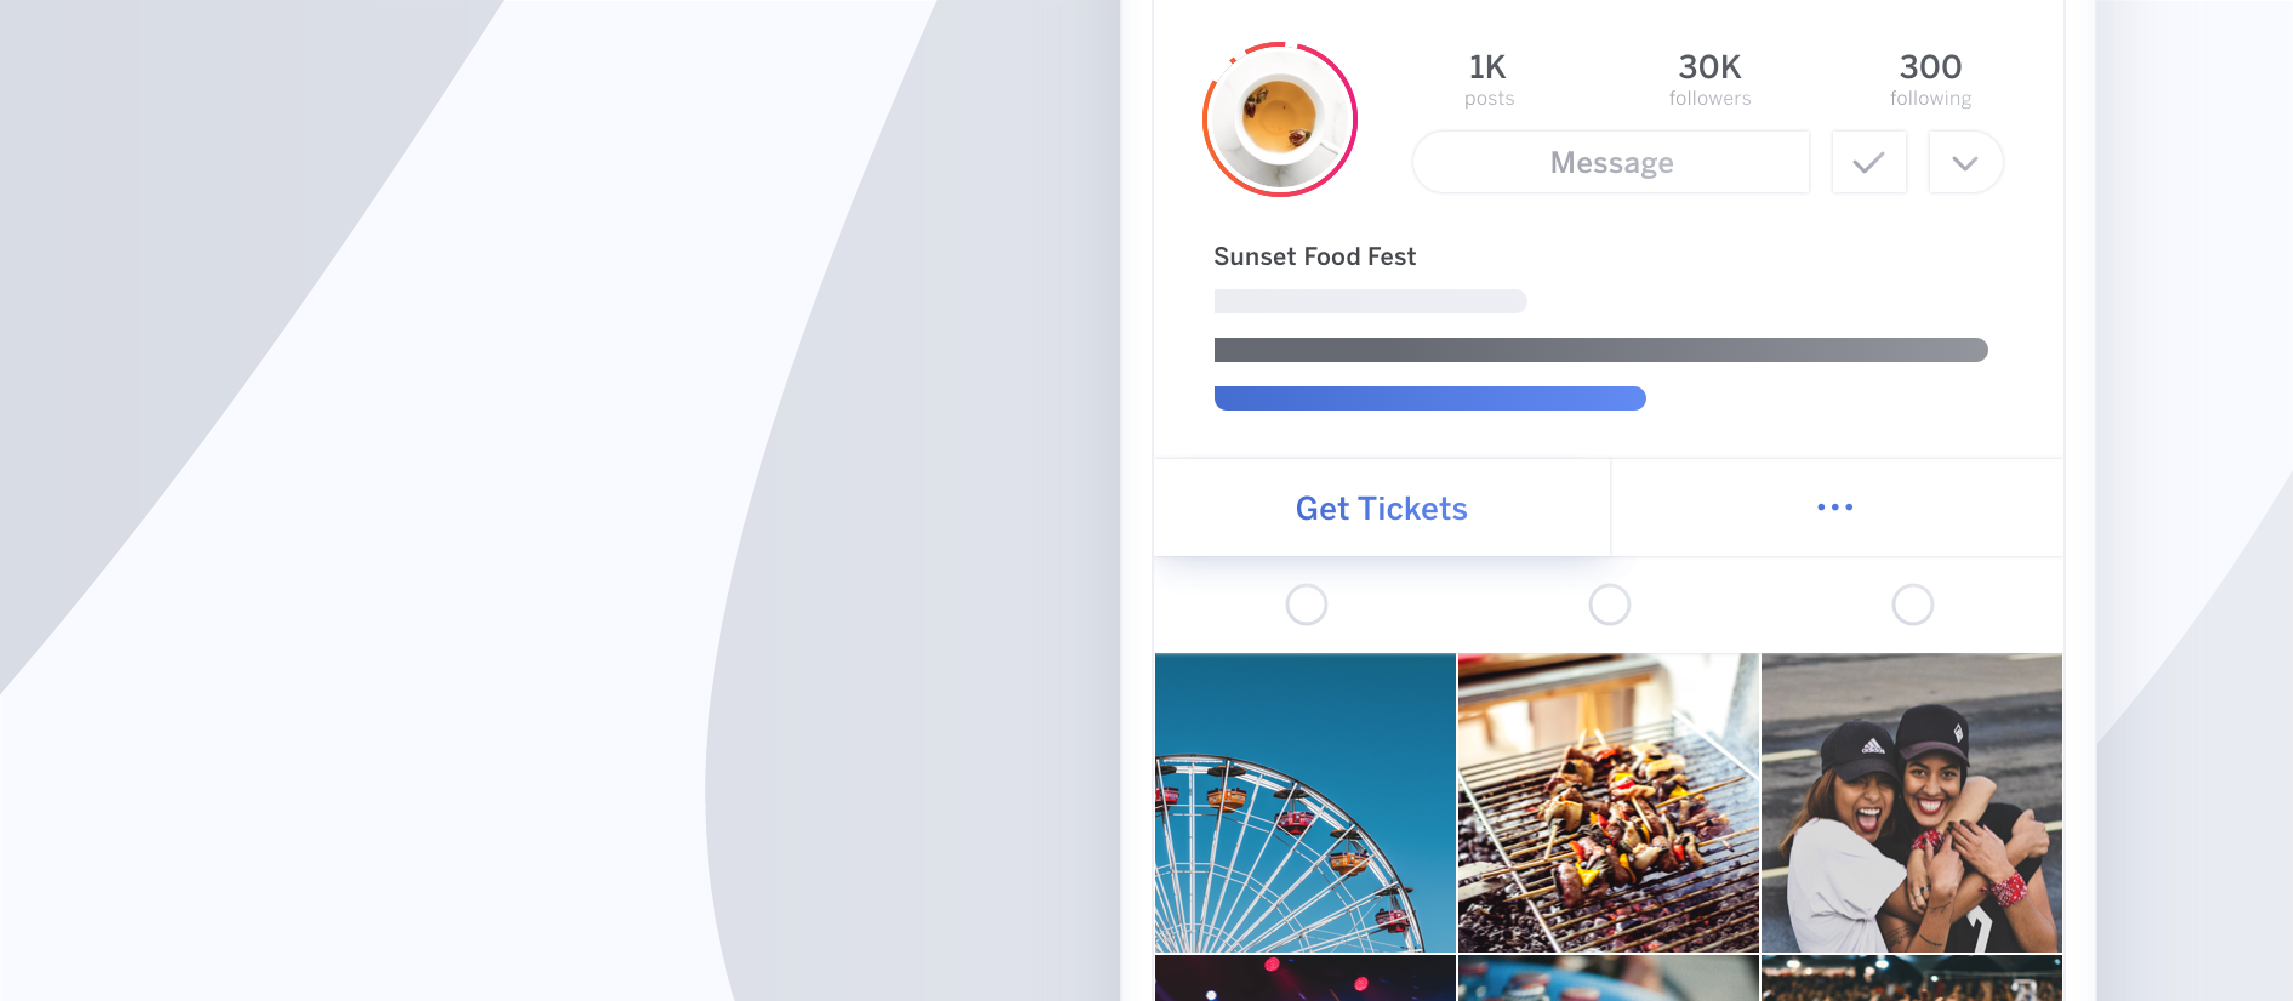 A New Way to Turn Browsing Into Ticket Sales on Instagram